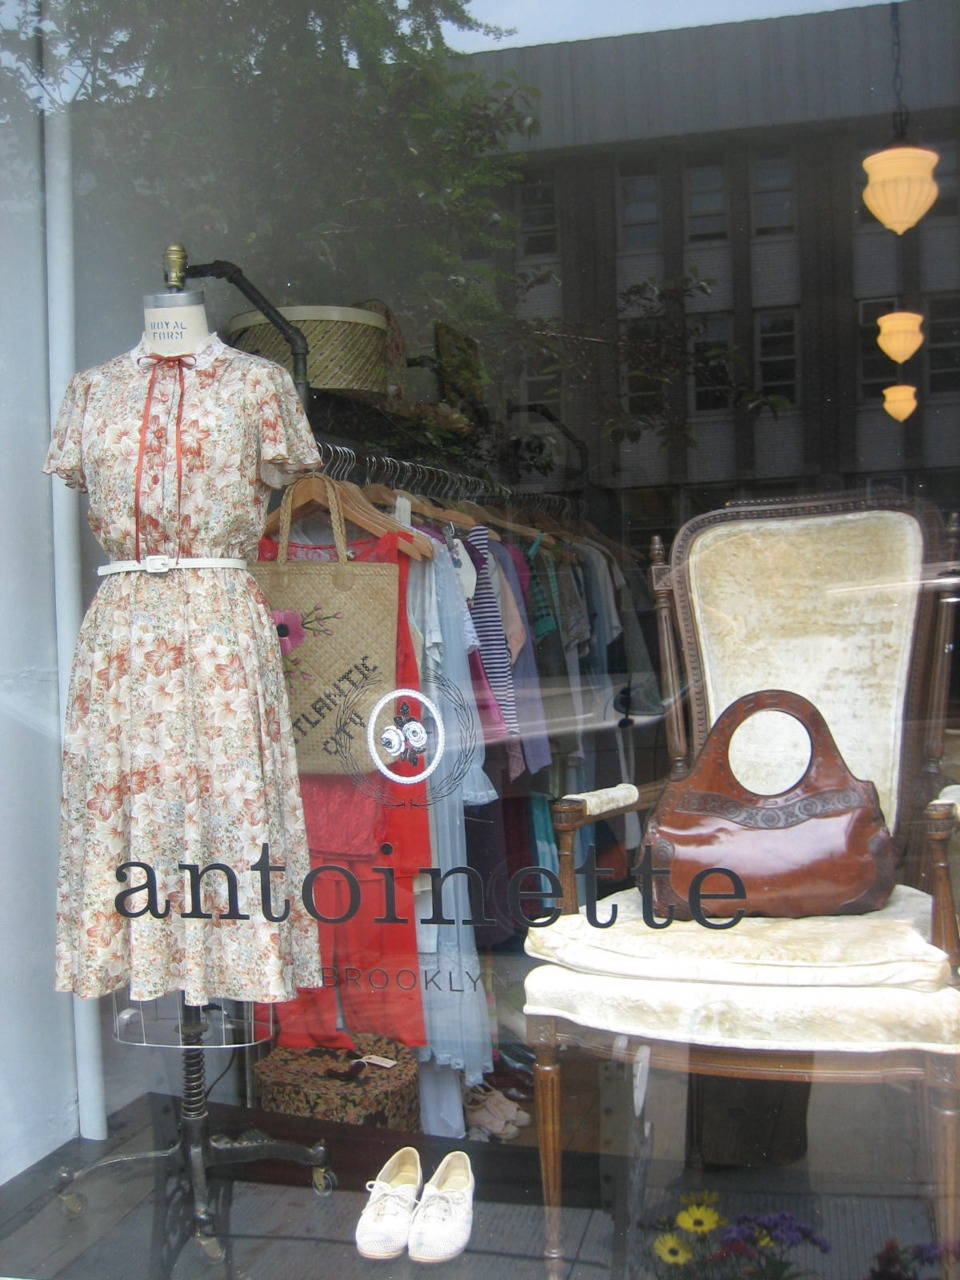 New window display